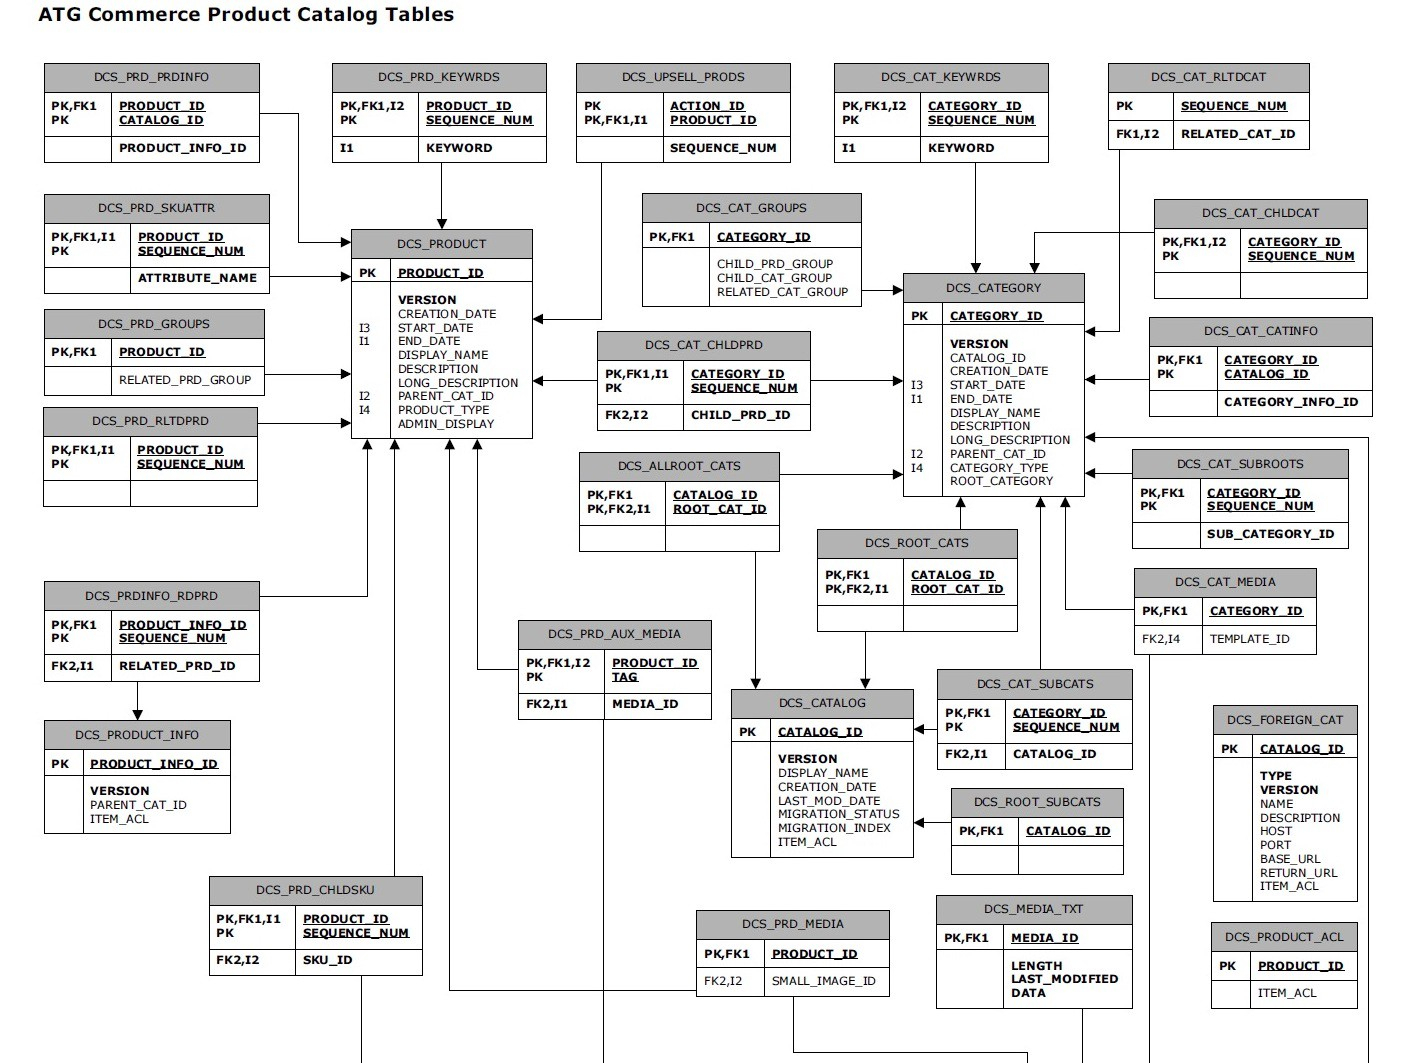 What Is An Entity-Relationship Diagram? - Better Programming regarding Entity Relationship Diagram Symbols And Meaning